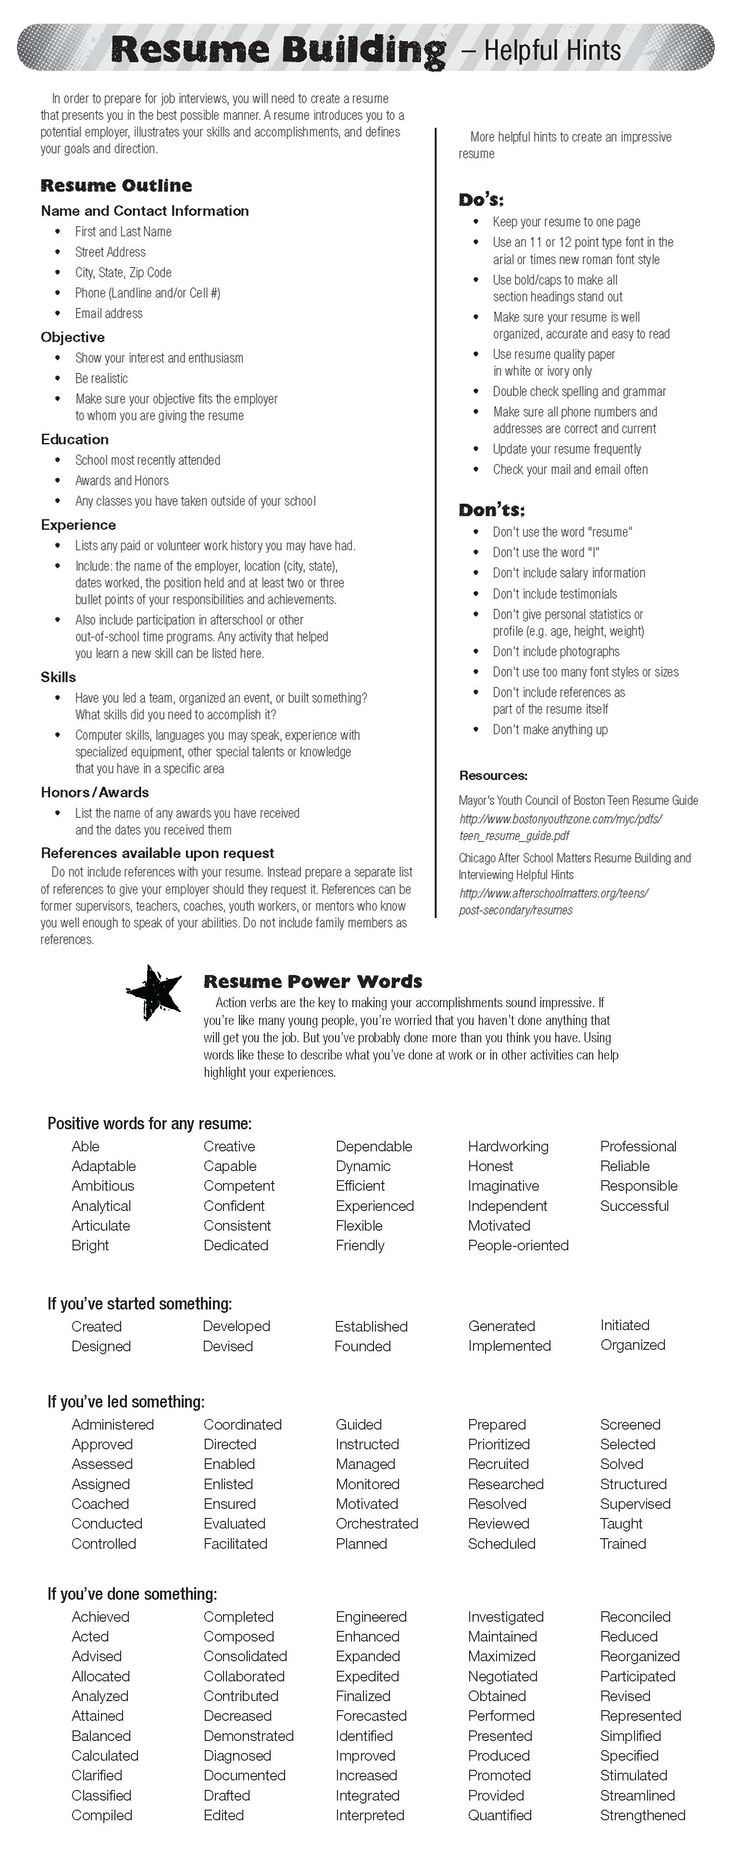 Opposenewapstandardsus  Gorgeous  Ideas About Resume On Pinterest  Cv Format Resume Cv And  With Inspiring  Ideas About Resume On Pinterest  Cv Format Resume Cv And Resume Templates With Breathtaking Professional Resume Formats Also Patient Care Technician Resume In Addition Resume Cover Letter Template Word And Banquet Server Resume As Well As Retail Resumes Additionally  Page Resume From Pinterestcom With Opposenewapstandardsus  Inspiring  Ideas About Resume On Pinterest  Cv Format Resume Cv And  With Breathtaking  Ideas About Resume On Pinterest  Cv Format Resume Cv And Resume Templates And Gorgeous Professional Resume Formats Also Patient Care Technician Resume In Addition Resume Cover Letter Template Word From Pinterestcom